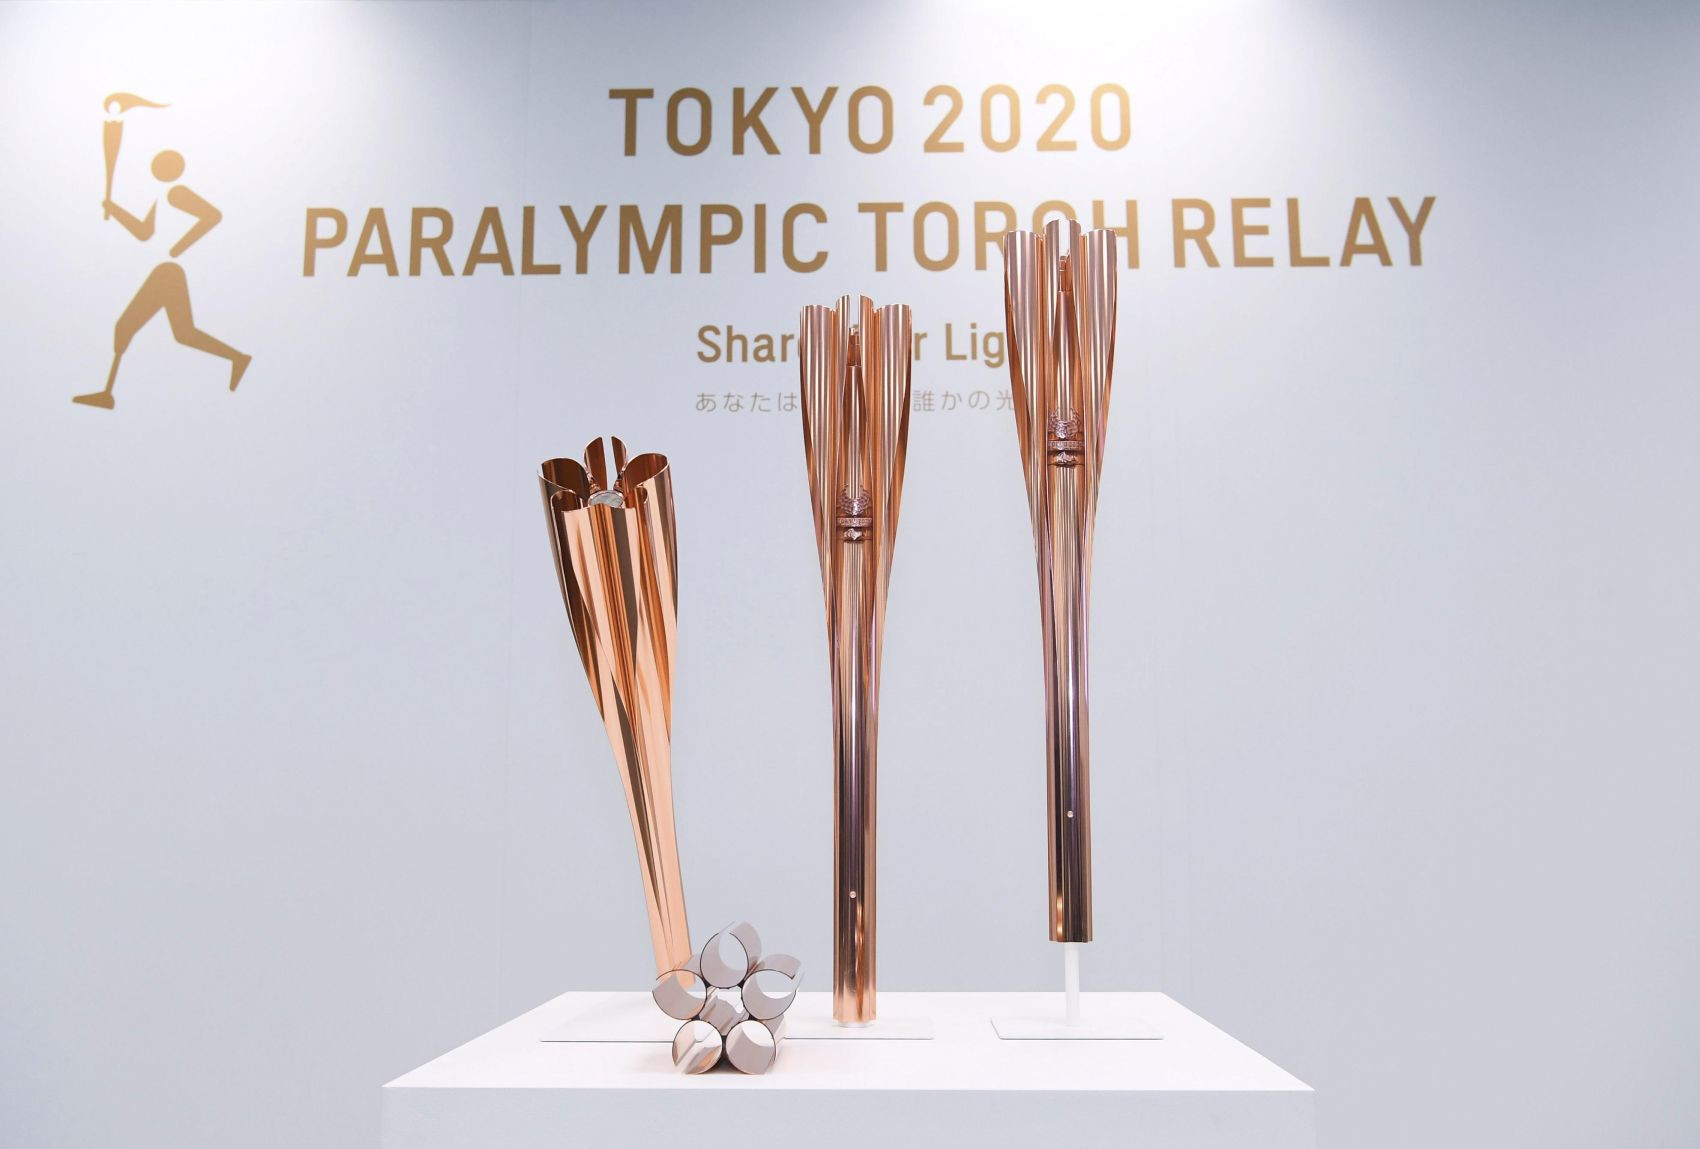 Stoke Mandeville Stadium will play a starring role in the Paralympic Torch Relay for Tokyo 2020 ©Tokyo 2020